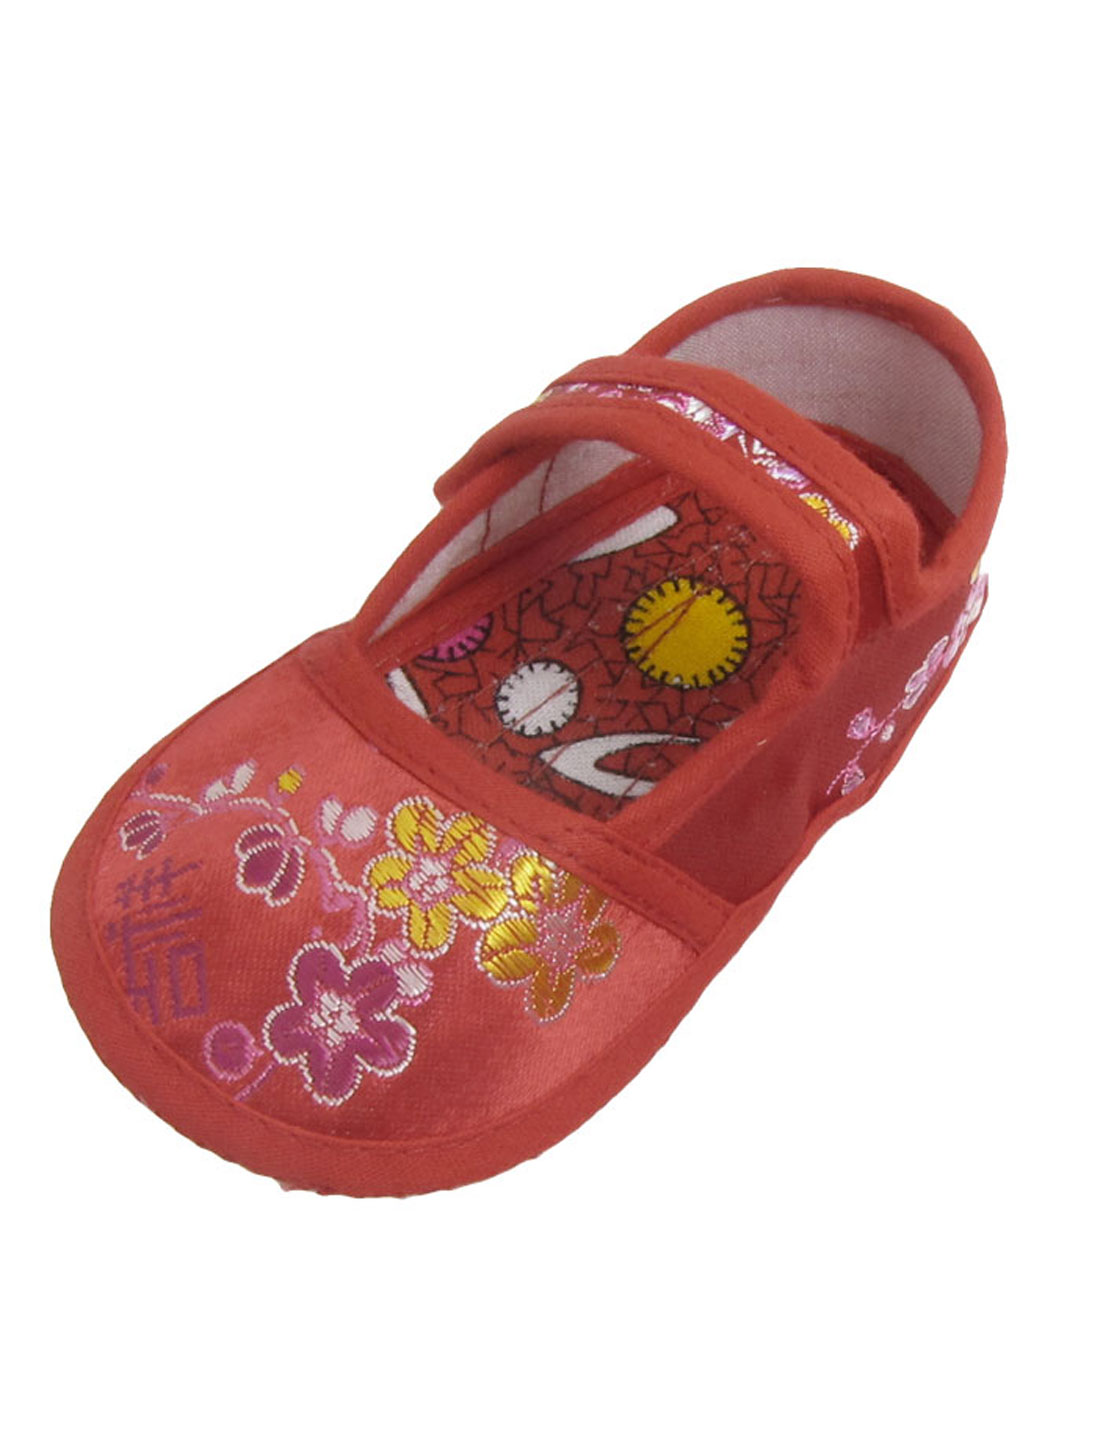 2 x Yellow Amaranth Floral Print Red Baby Crib Toddler Shoes US 3.5